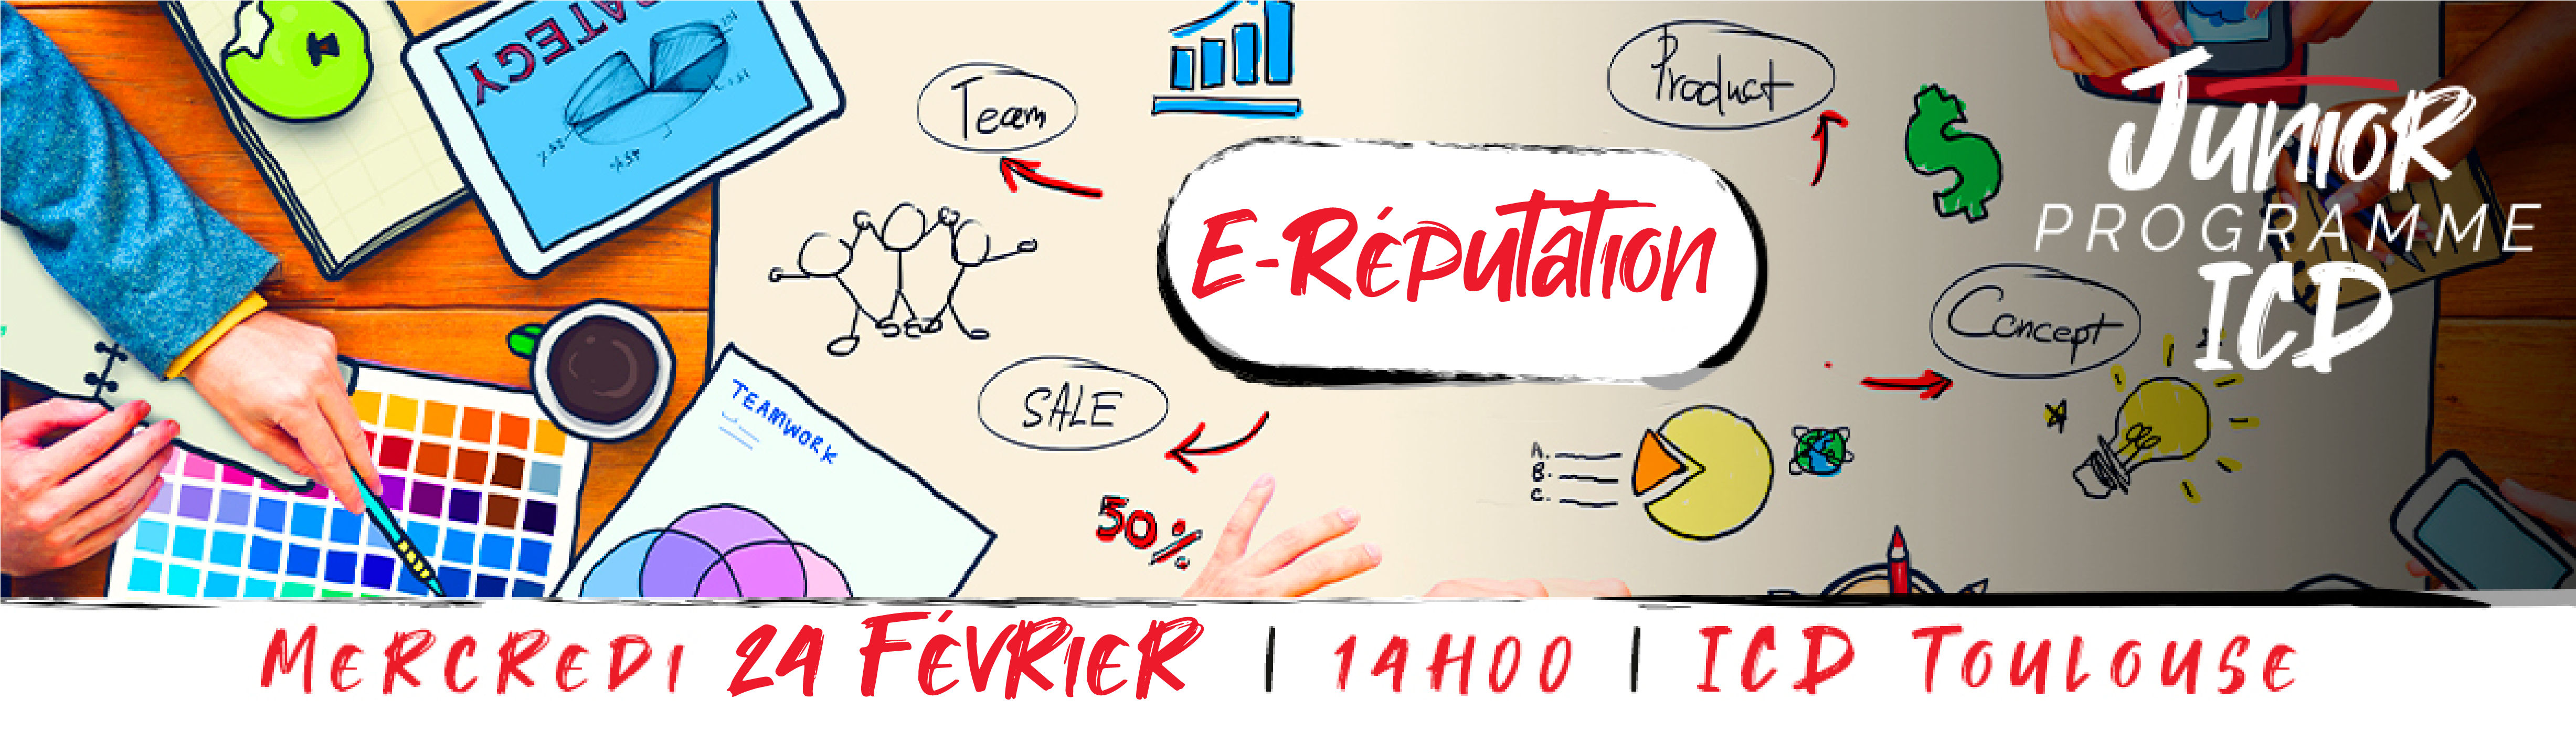 ICD_Toulouse_Junior_Programme_E-Reputation